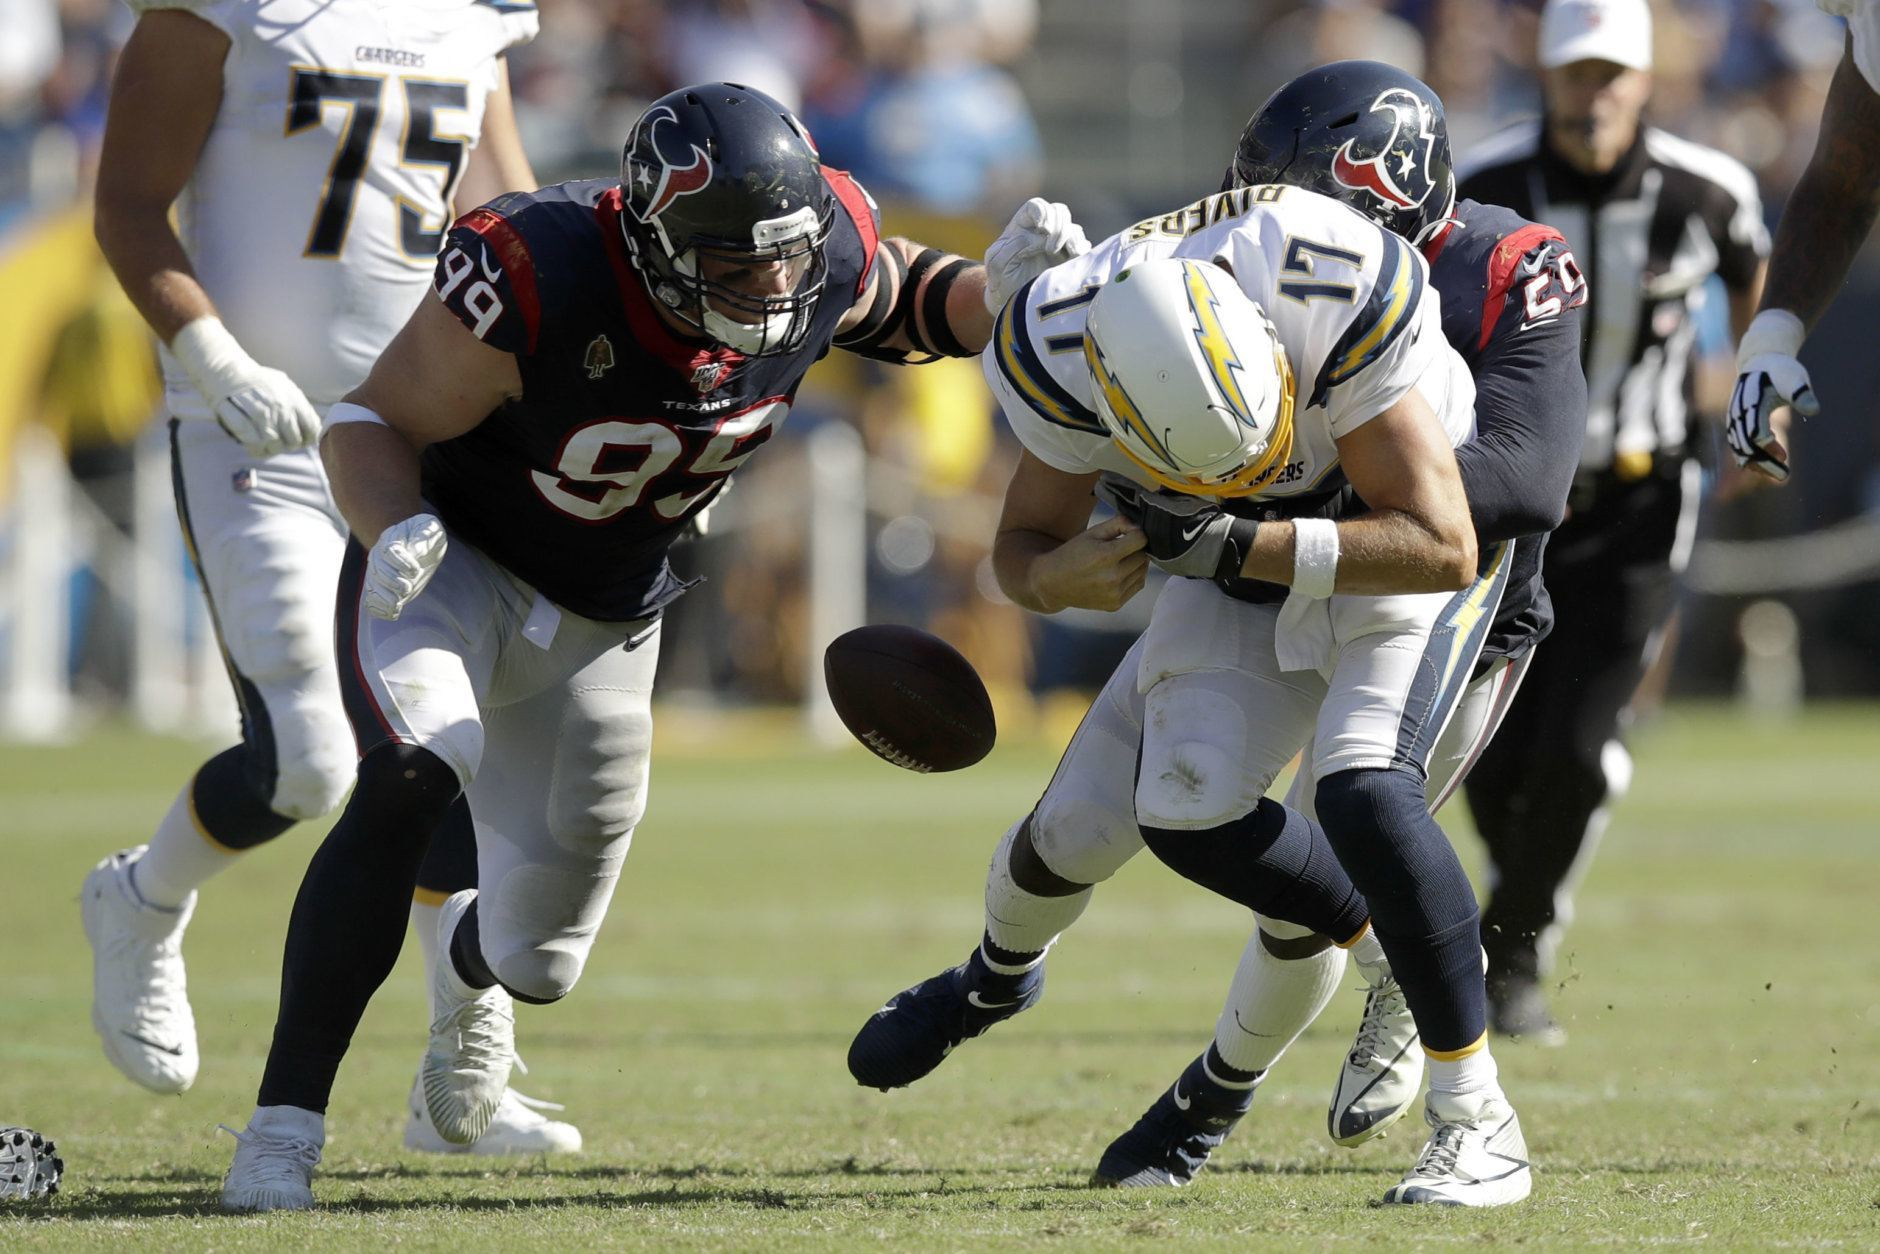 "<p><b><i>Texans 27</i></b><br /> <b><i>Chargers 20</i></b></p> <p>Philip Rivers — the literal <a href=""https://profootballtalk.nbcsports.com/2019/09/18/philip-rivers-set-for-211th-straight-start-with-other-2004-first-round-qbs-out-of-action/"" target=""_blank"" rel=""noopener"" data-saferedirecturl=""https://www.google.com/url?q=https://profootballtalk.nbcsports.com/2019/09/18/philip-rivers-set-for-211th-straight-start-with-other-2004-first-round-qbs-out-of-action/&amp;source=gmail&amp;ust=1569294743340000&amp;usg=AFQjCNG1y09AxLVbEMCfAEIR3UYwZhvqqw"">last man standing</a> from the QB Class of 2004 — couldn&#8217;t avoid a second straight late-game letdown but the Chargers can take solace in their virtual bye week in Miami next week.</p>"